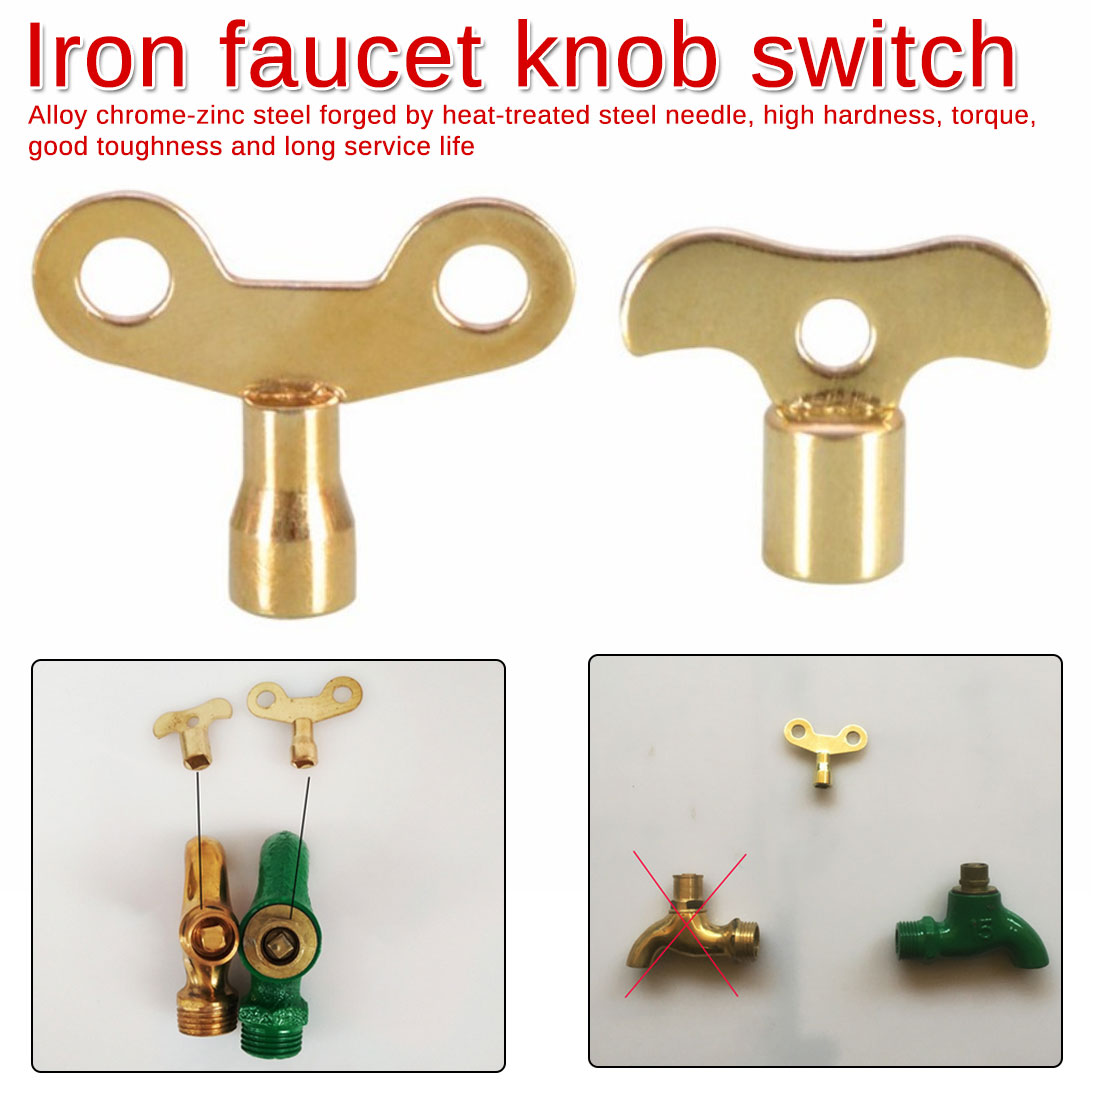 Knob Type Key Bleed Hole Plumbing Faucet Special Lock Square Socket Brass Radiator Hardware Accessories Non-rust